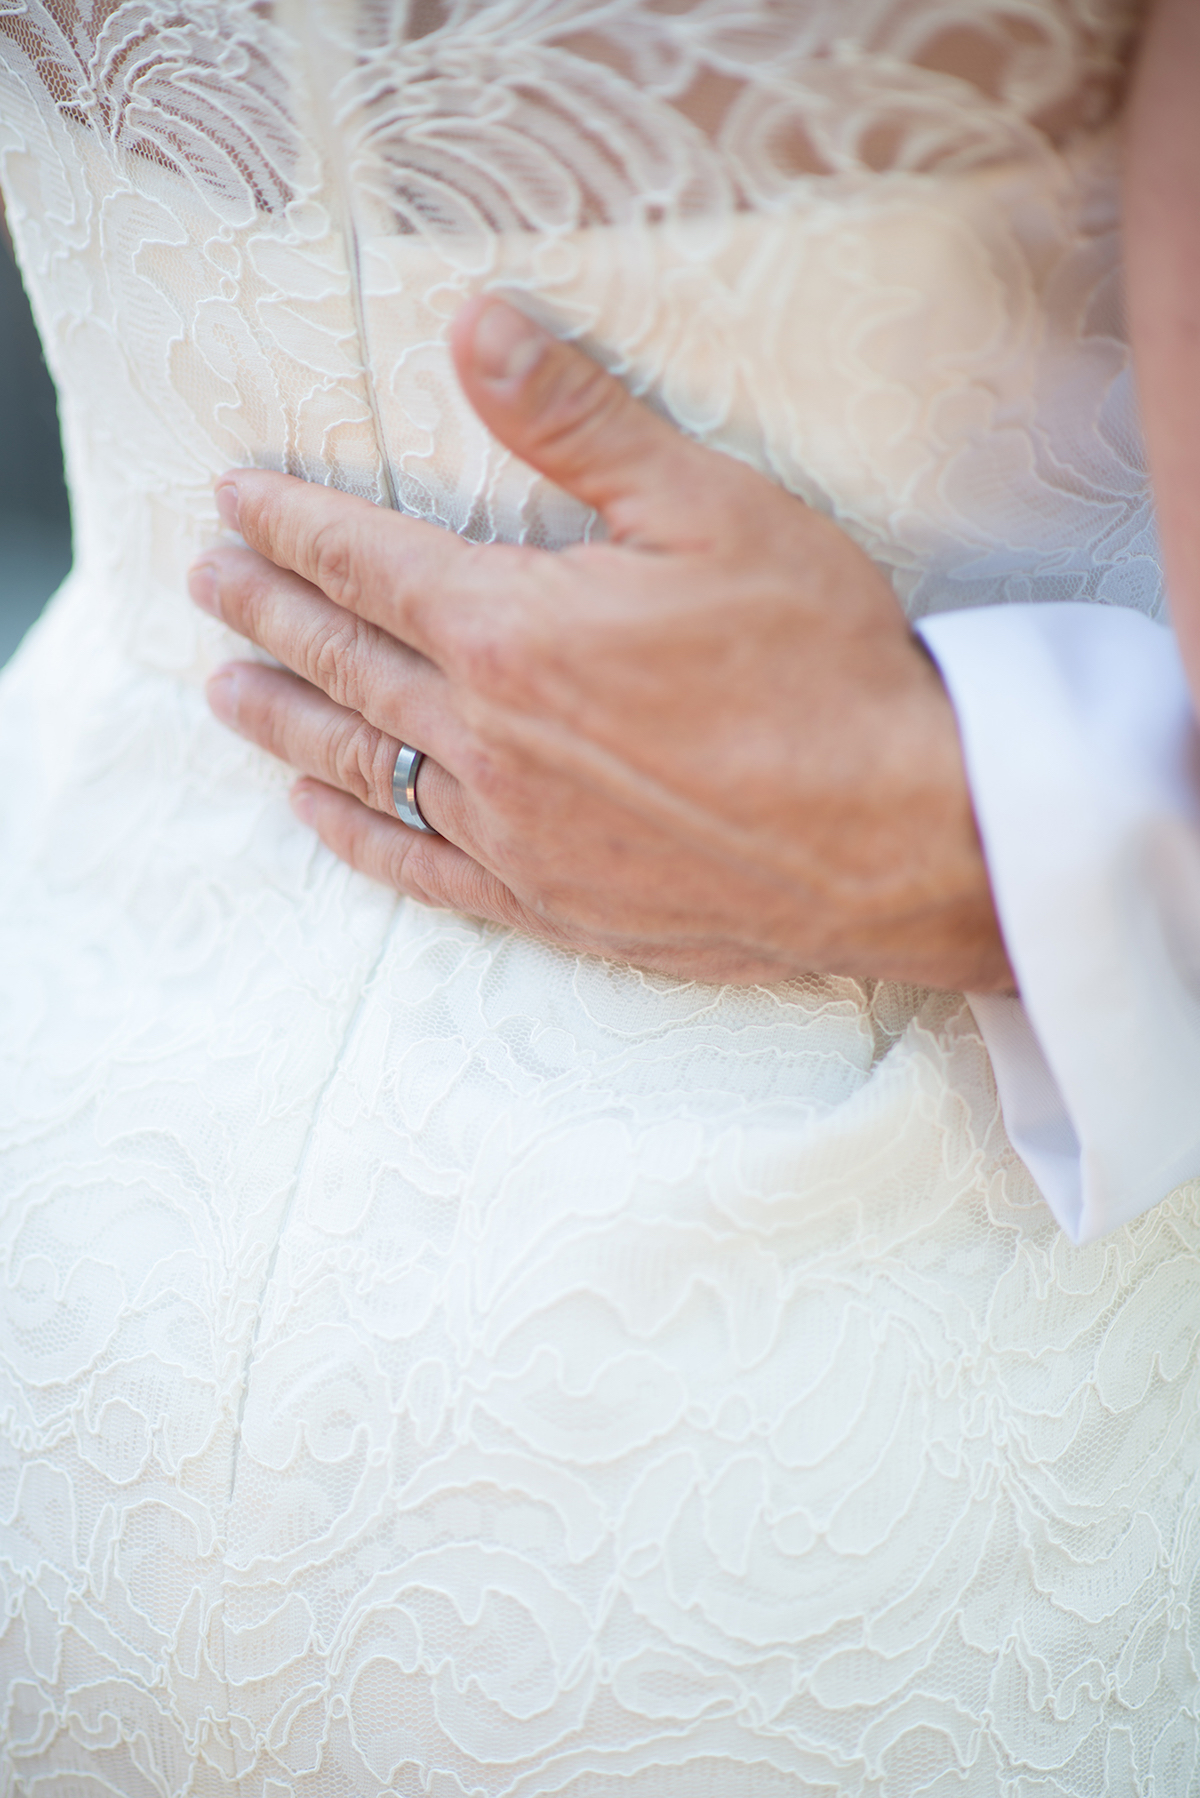 Intimate-Military-Elopement-hand-on-back.jpg